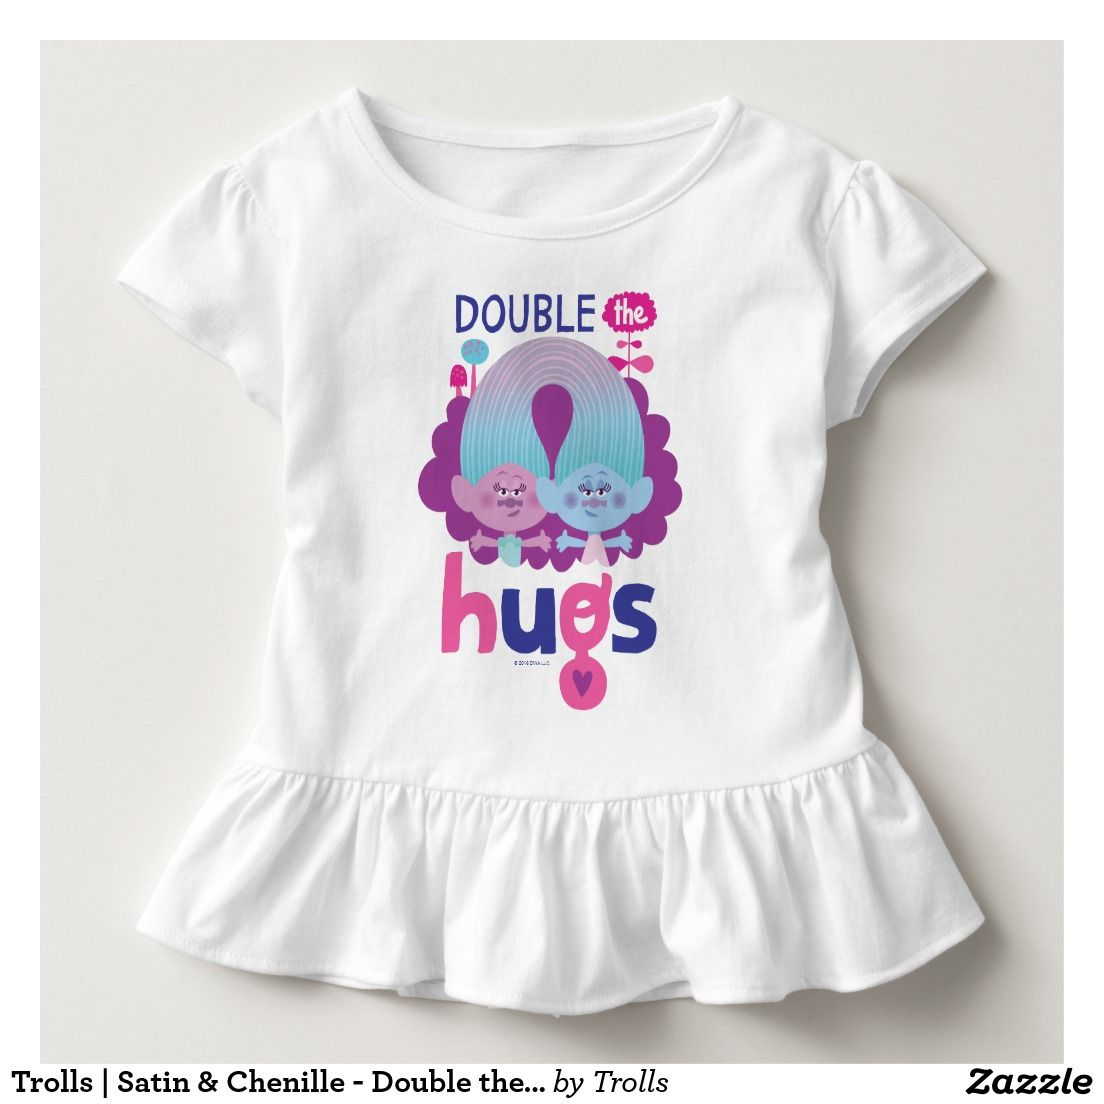 Design your own t shirt zazzle - Trolls Satin Chenille Double The Hugs Toddler T Shirt